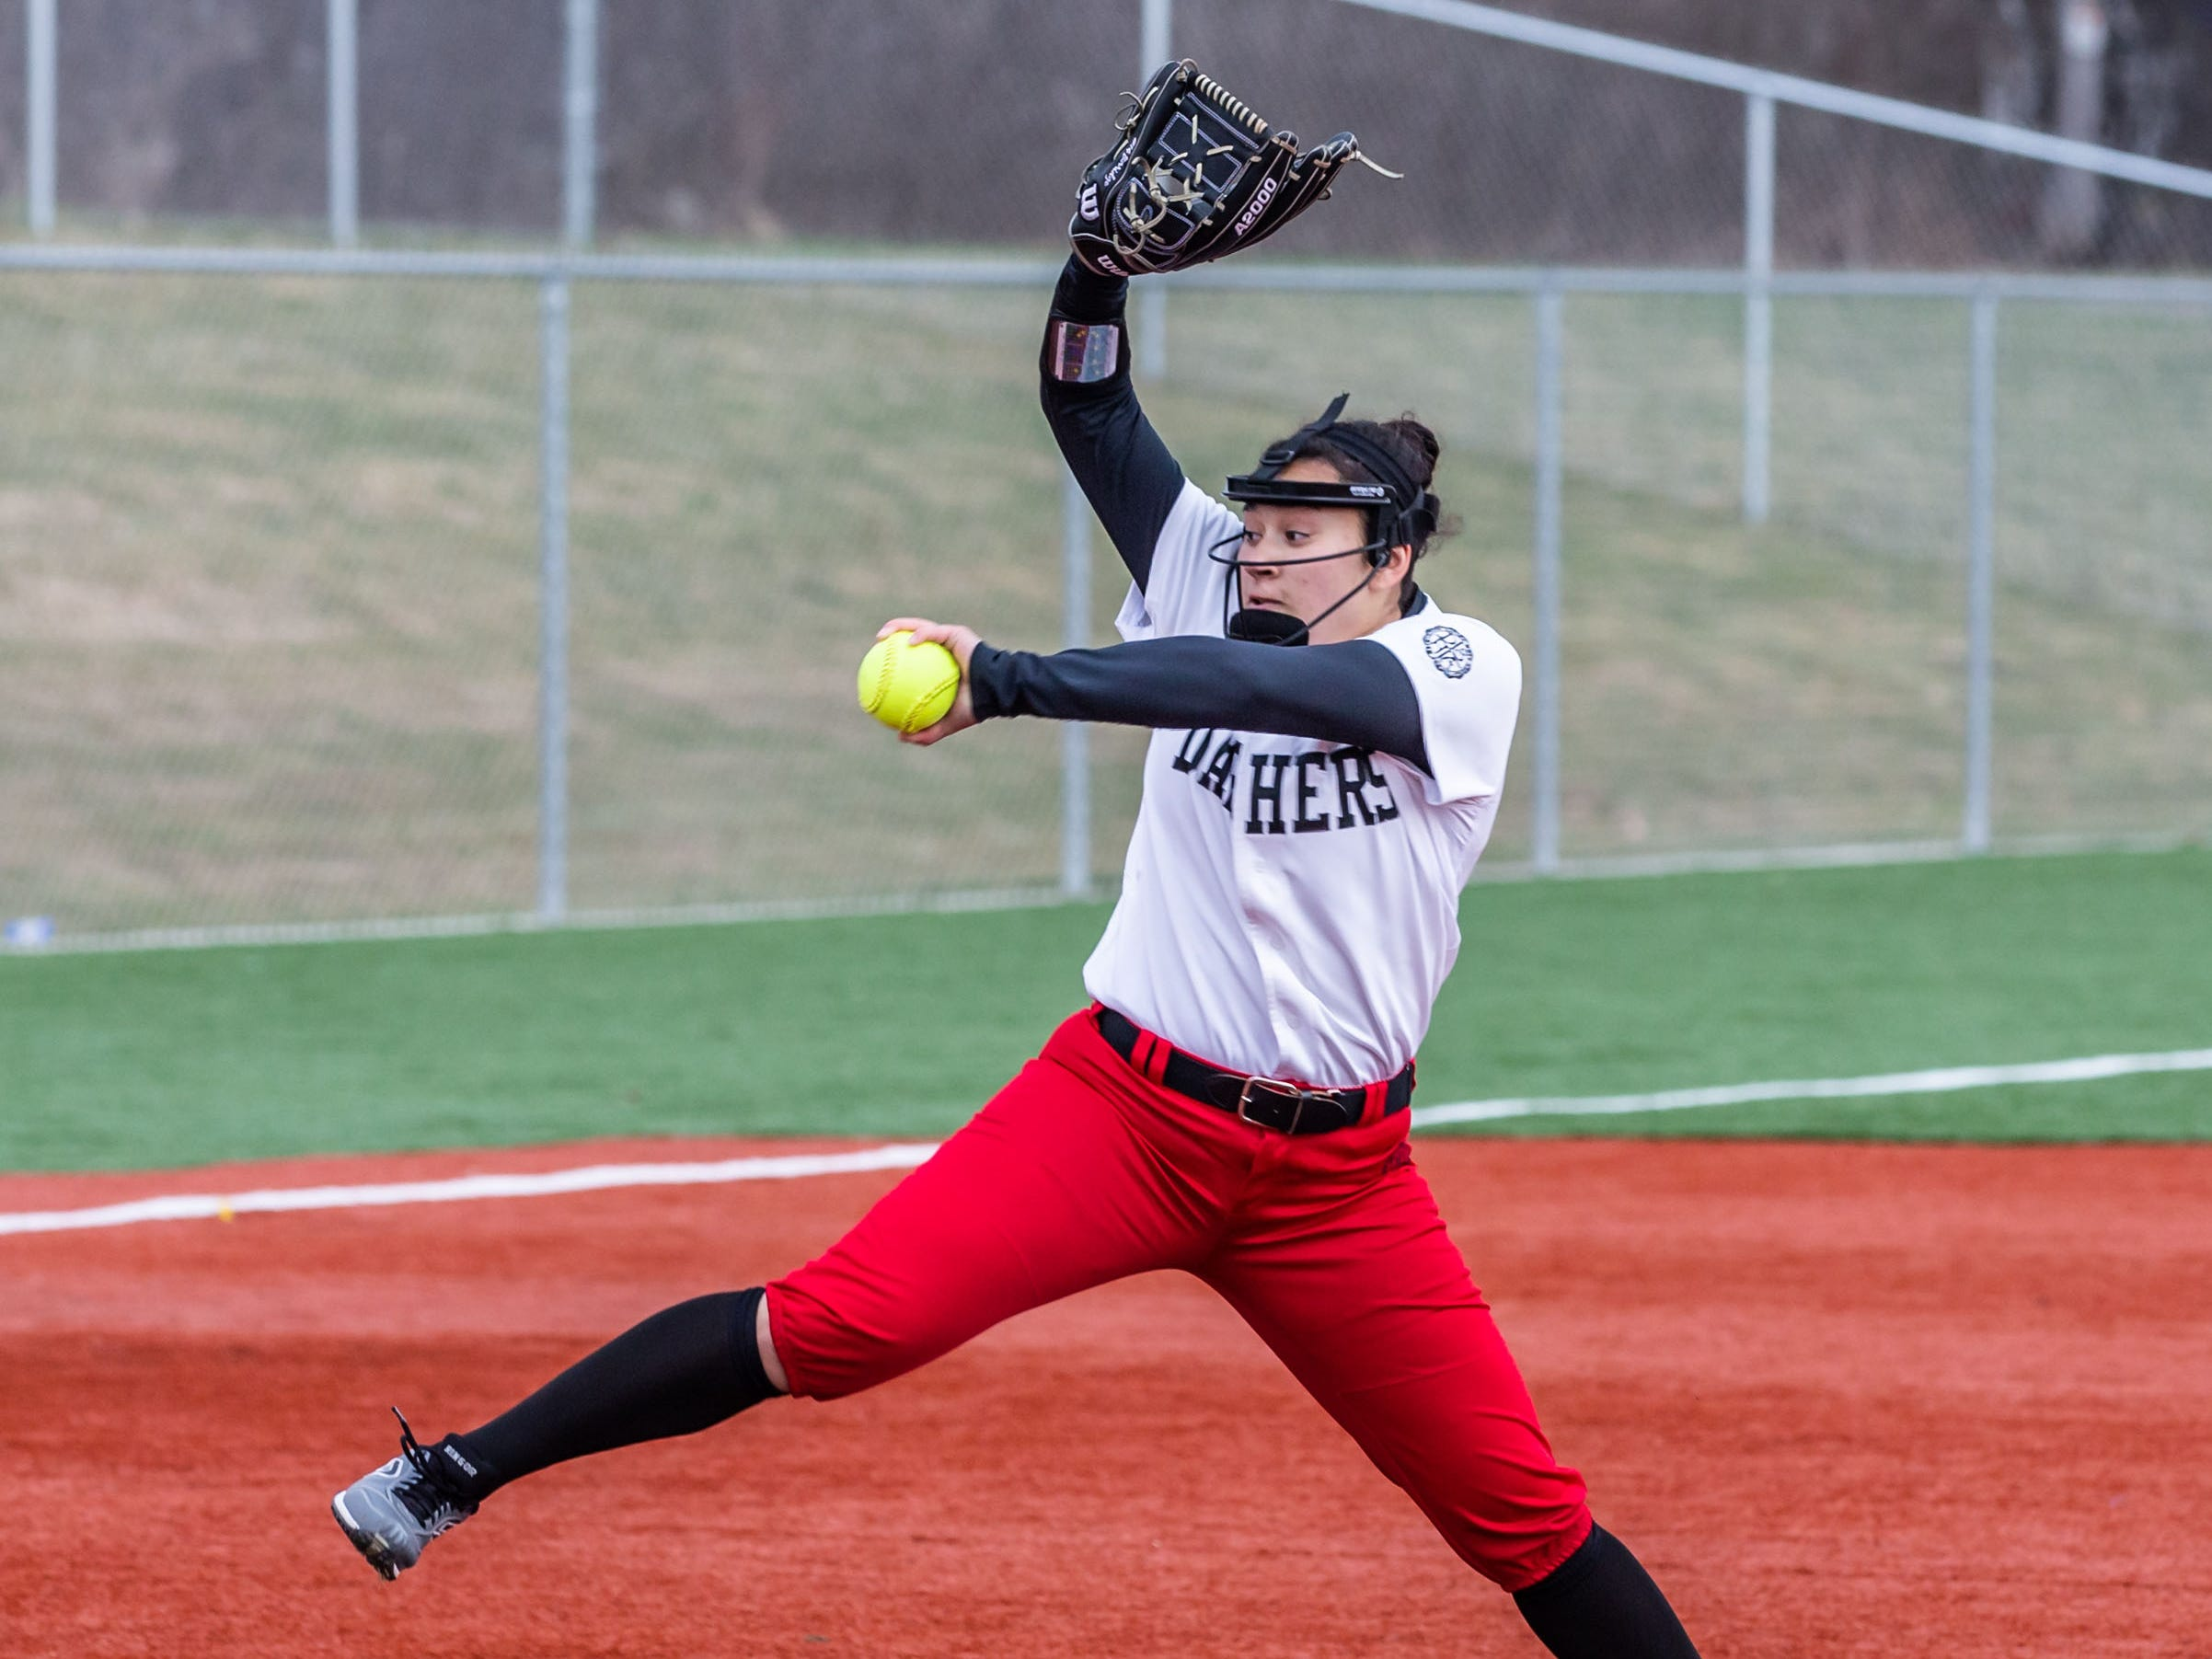 DSHA pitcher Lauren Berridge winds up during the game at Wauwatosa West on Wednesday, April 17, 2019.